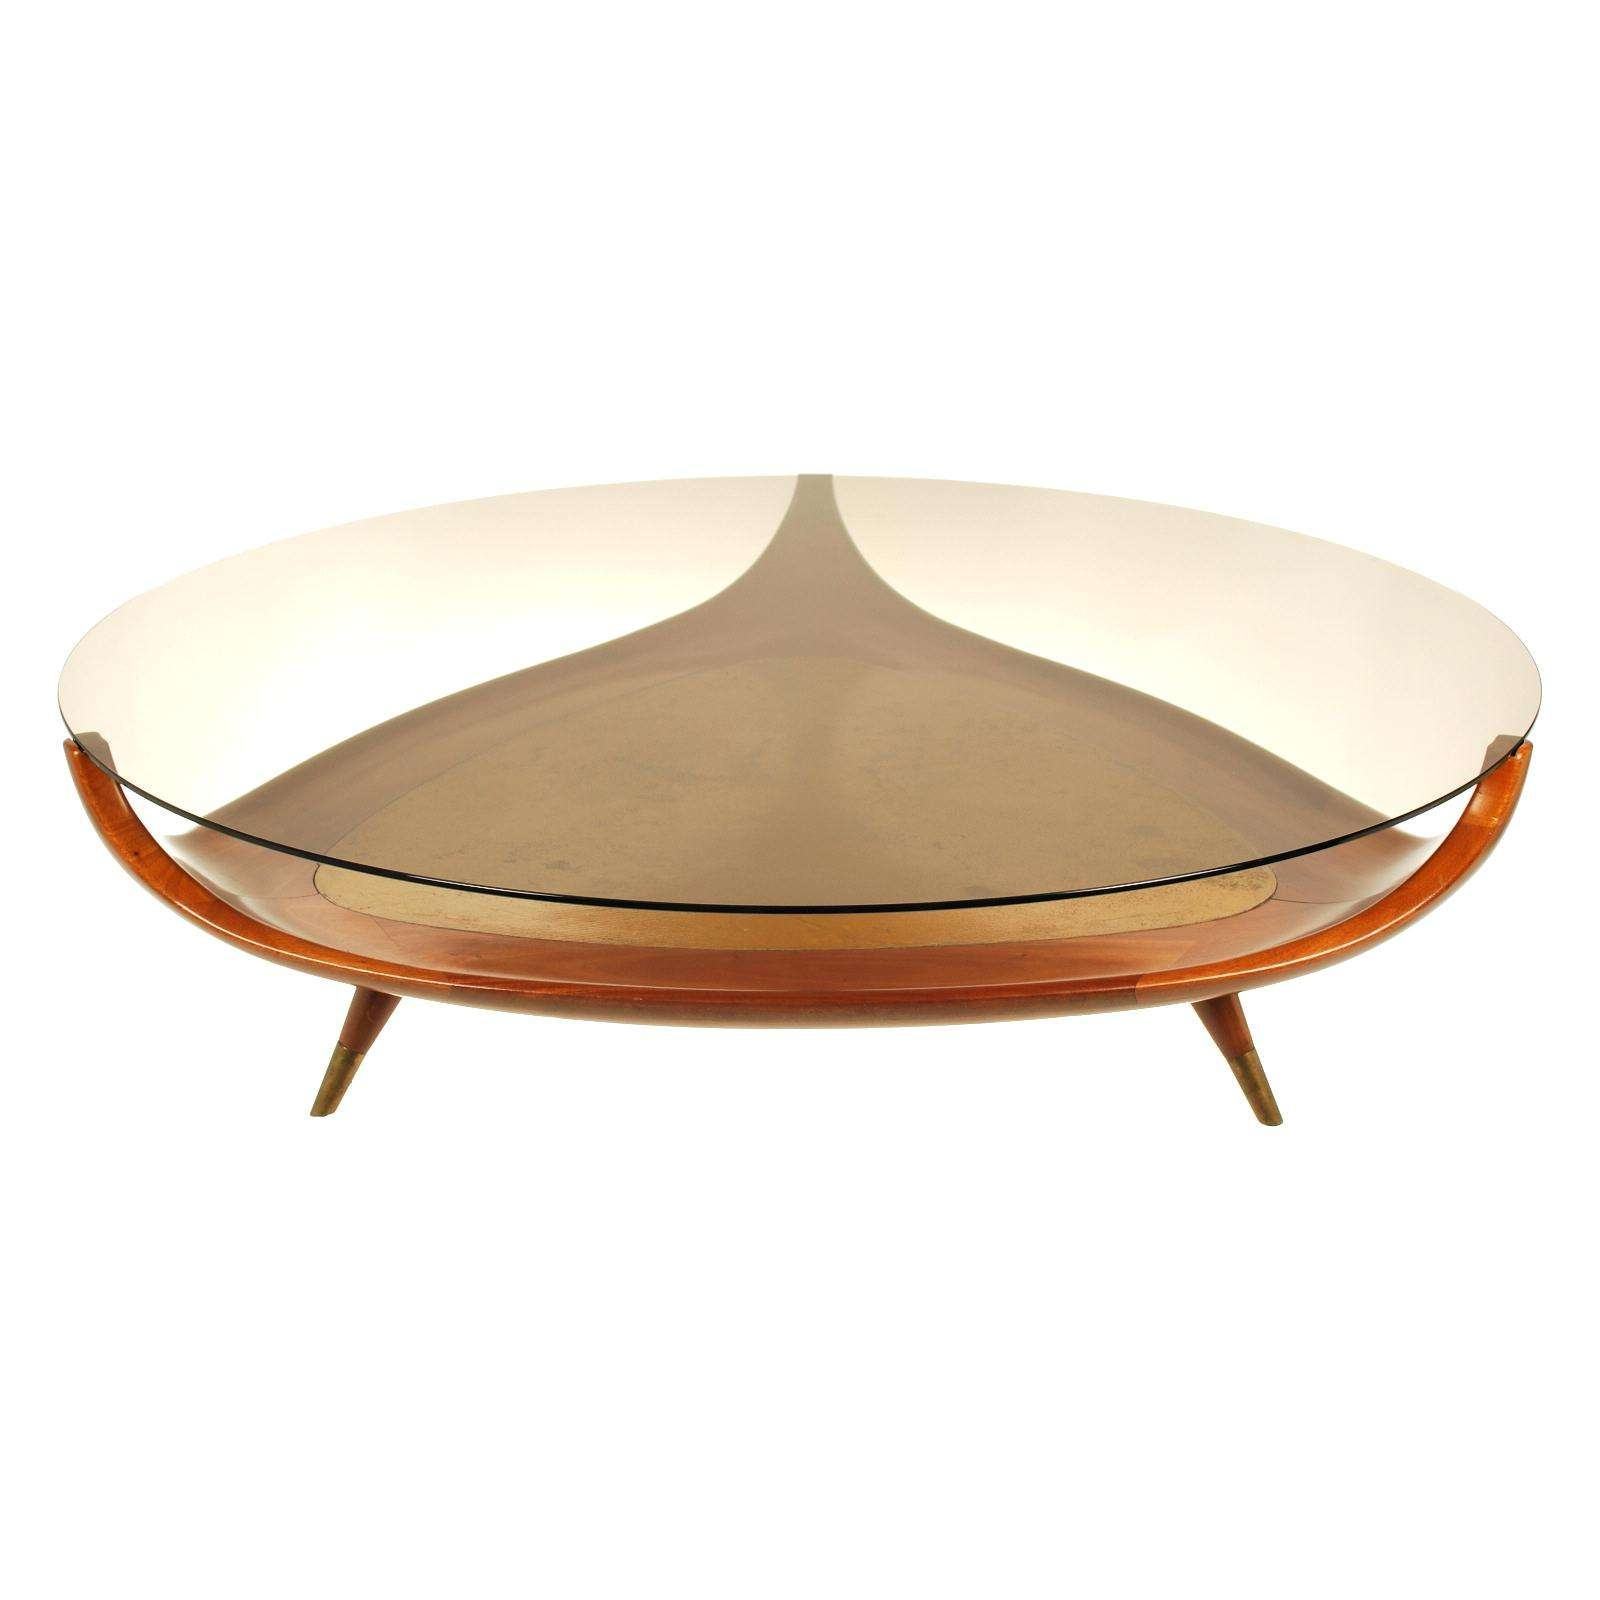 Vintage Brass Krusin Square Coffee Table In Oak With Glass Top Within Most Up To Date Retro Glass Top Coffee Tables (Gallery 16 of 20)